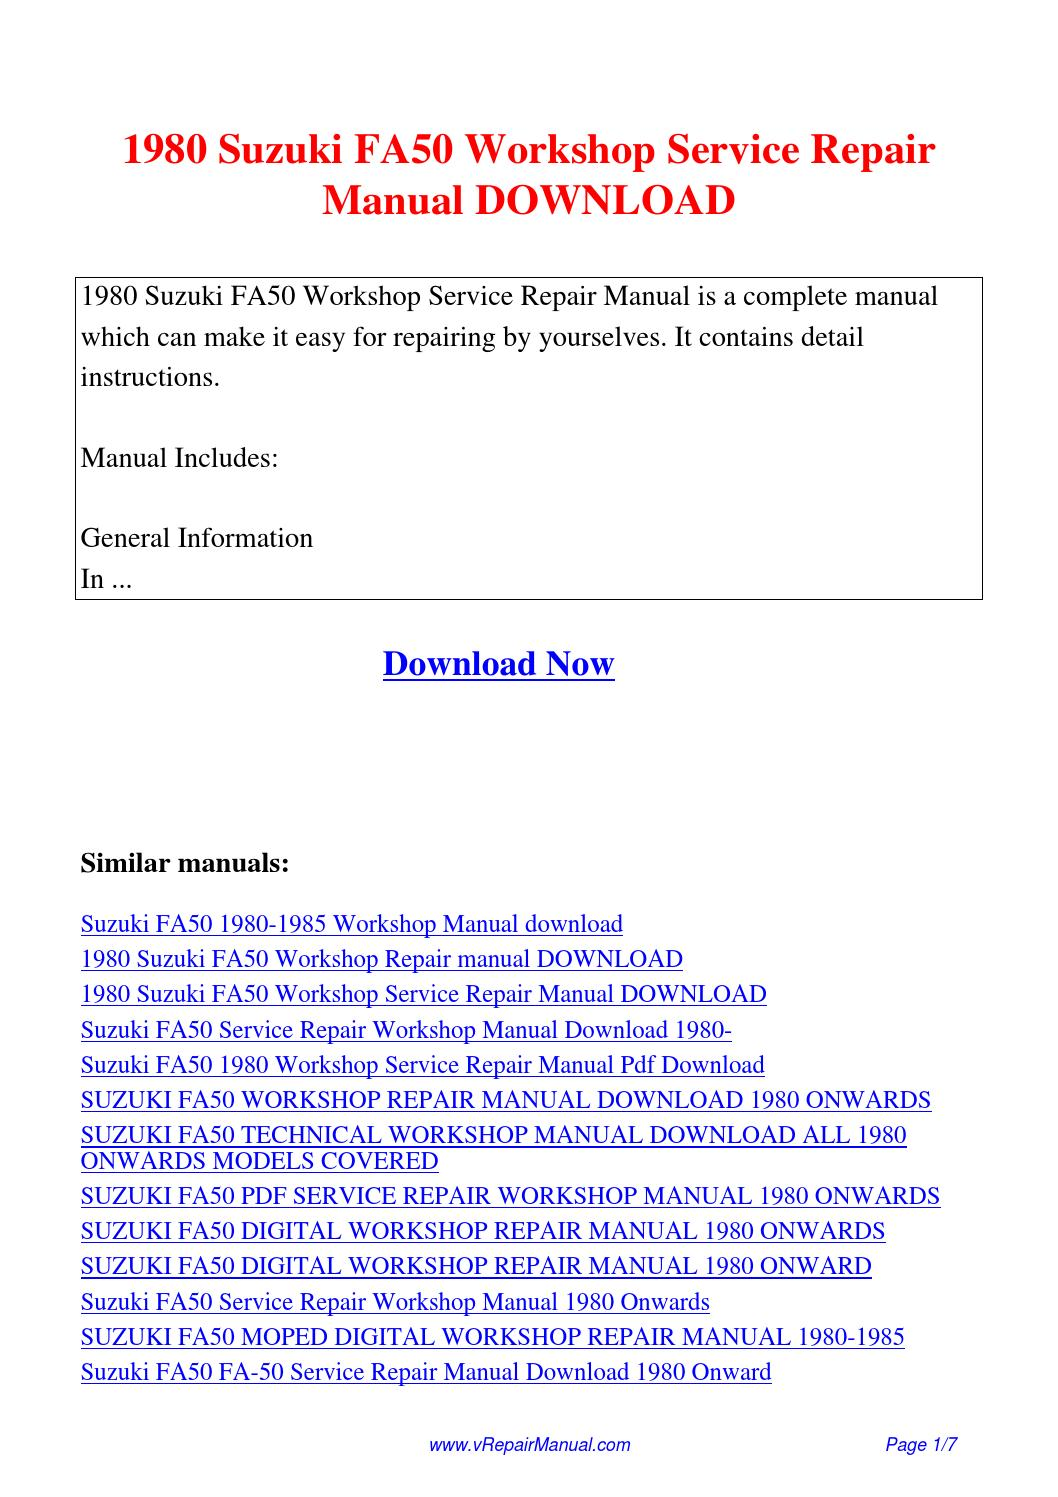 1980 Suzuki FA50 Workshop Service Repair Manual.pdf by David Zhang - issuu